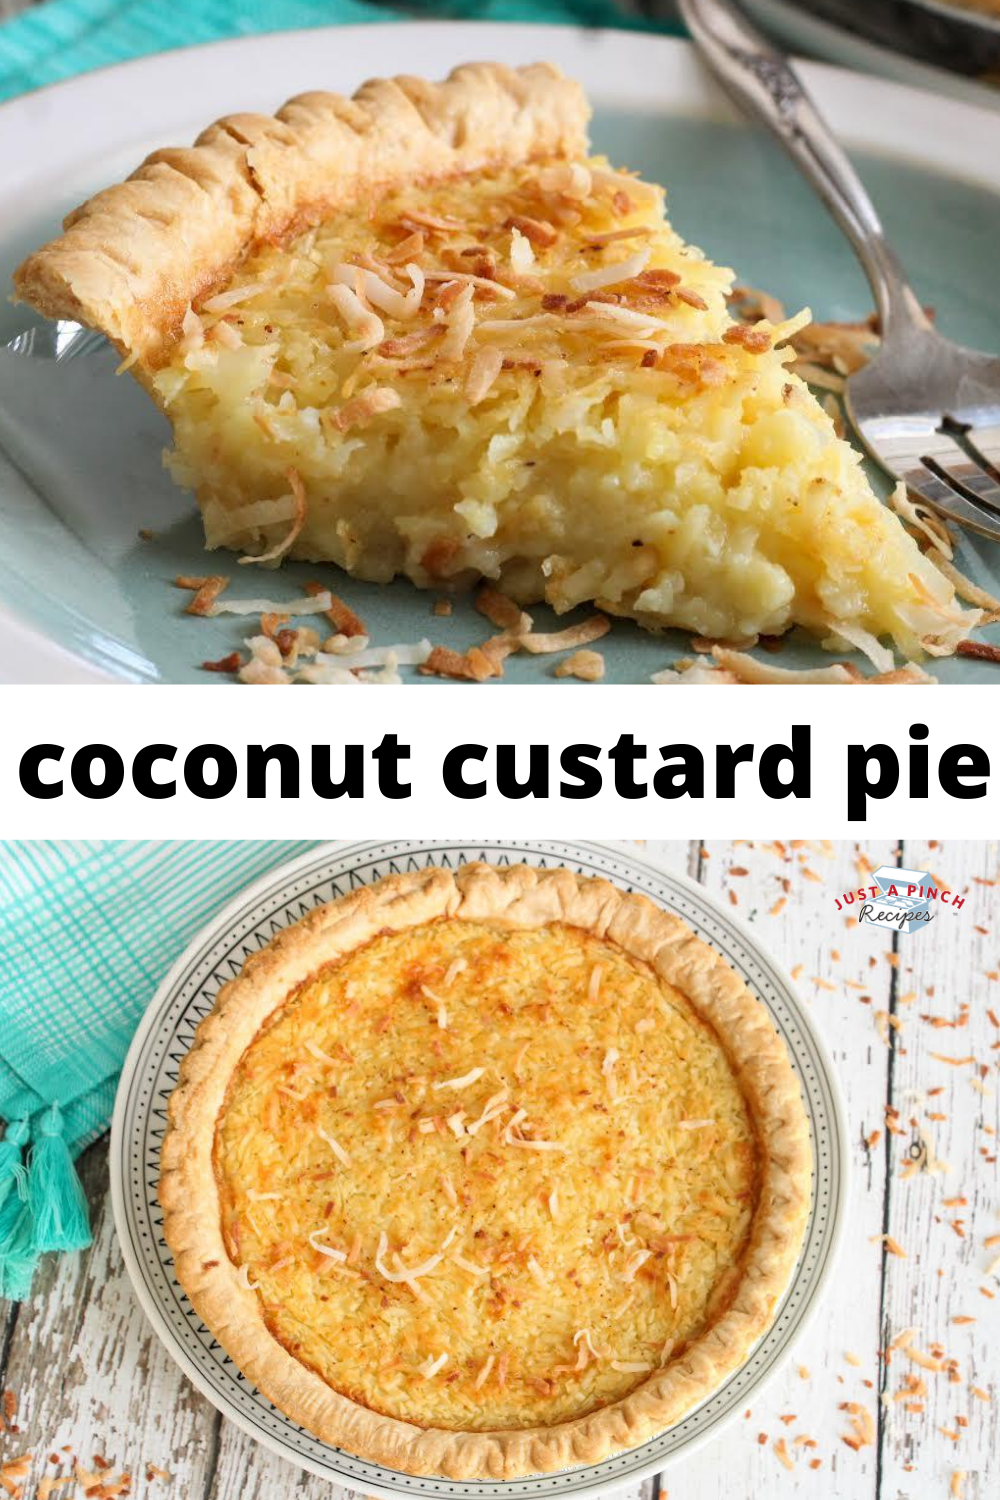 Lizzie S Coconut Custard Pie Recipe In 2020 Coconut Custard Coconut Recipes Coconut Custard Pie